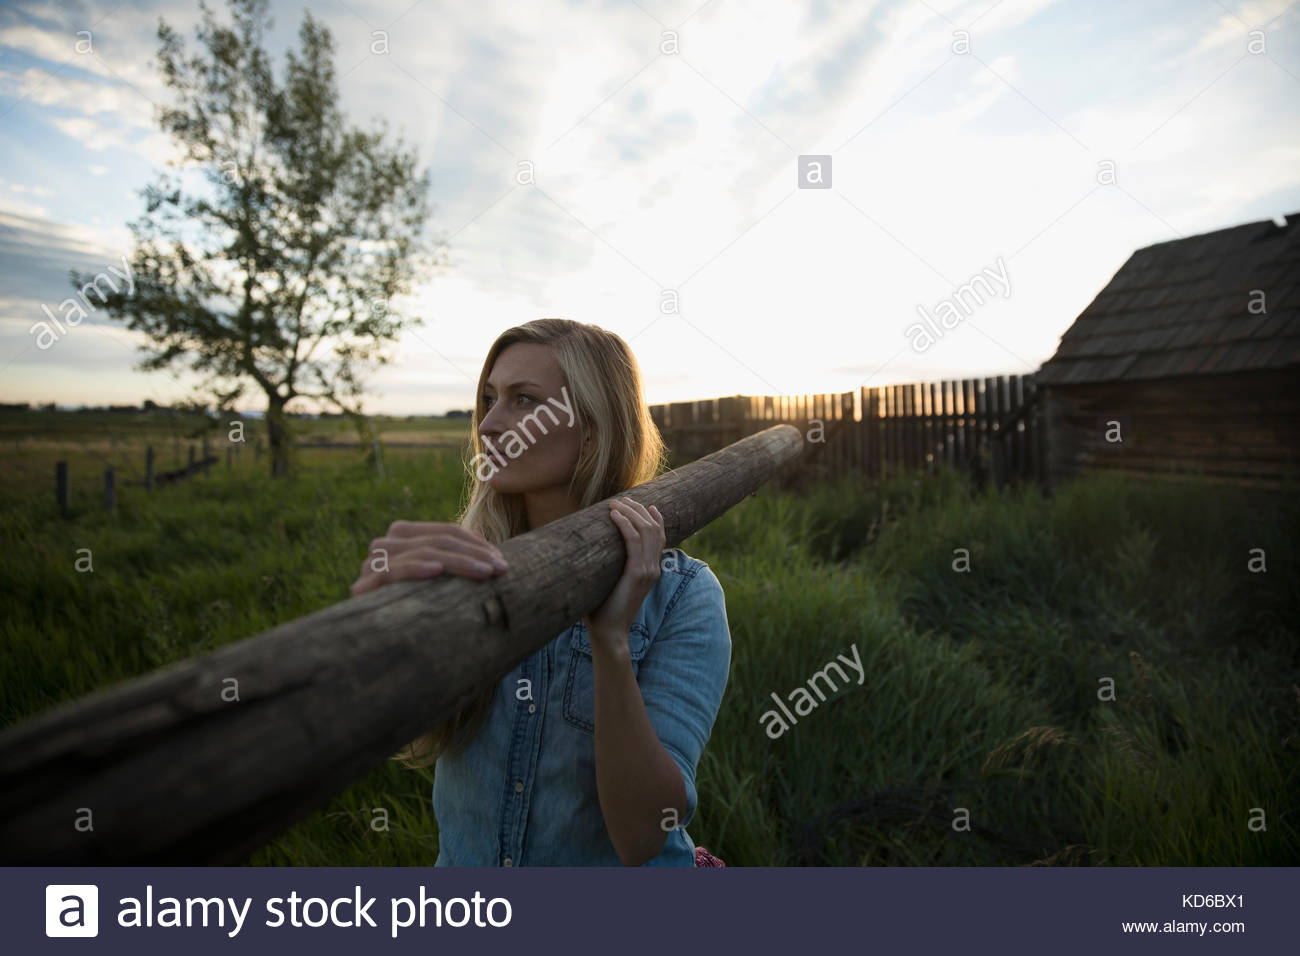 Young female farmer carrying fence post on farm at sunset - Stock Image